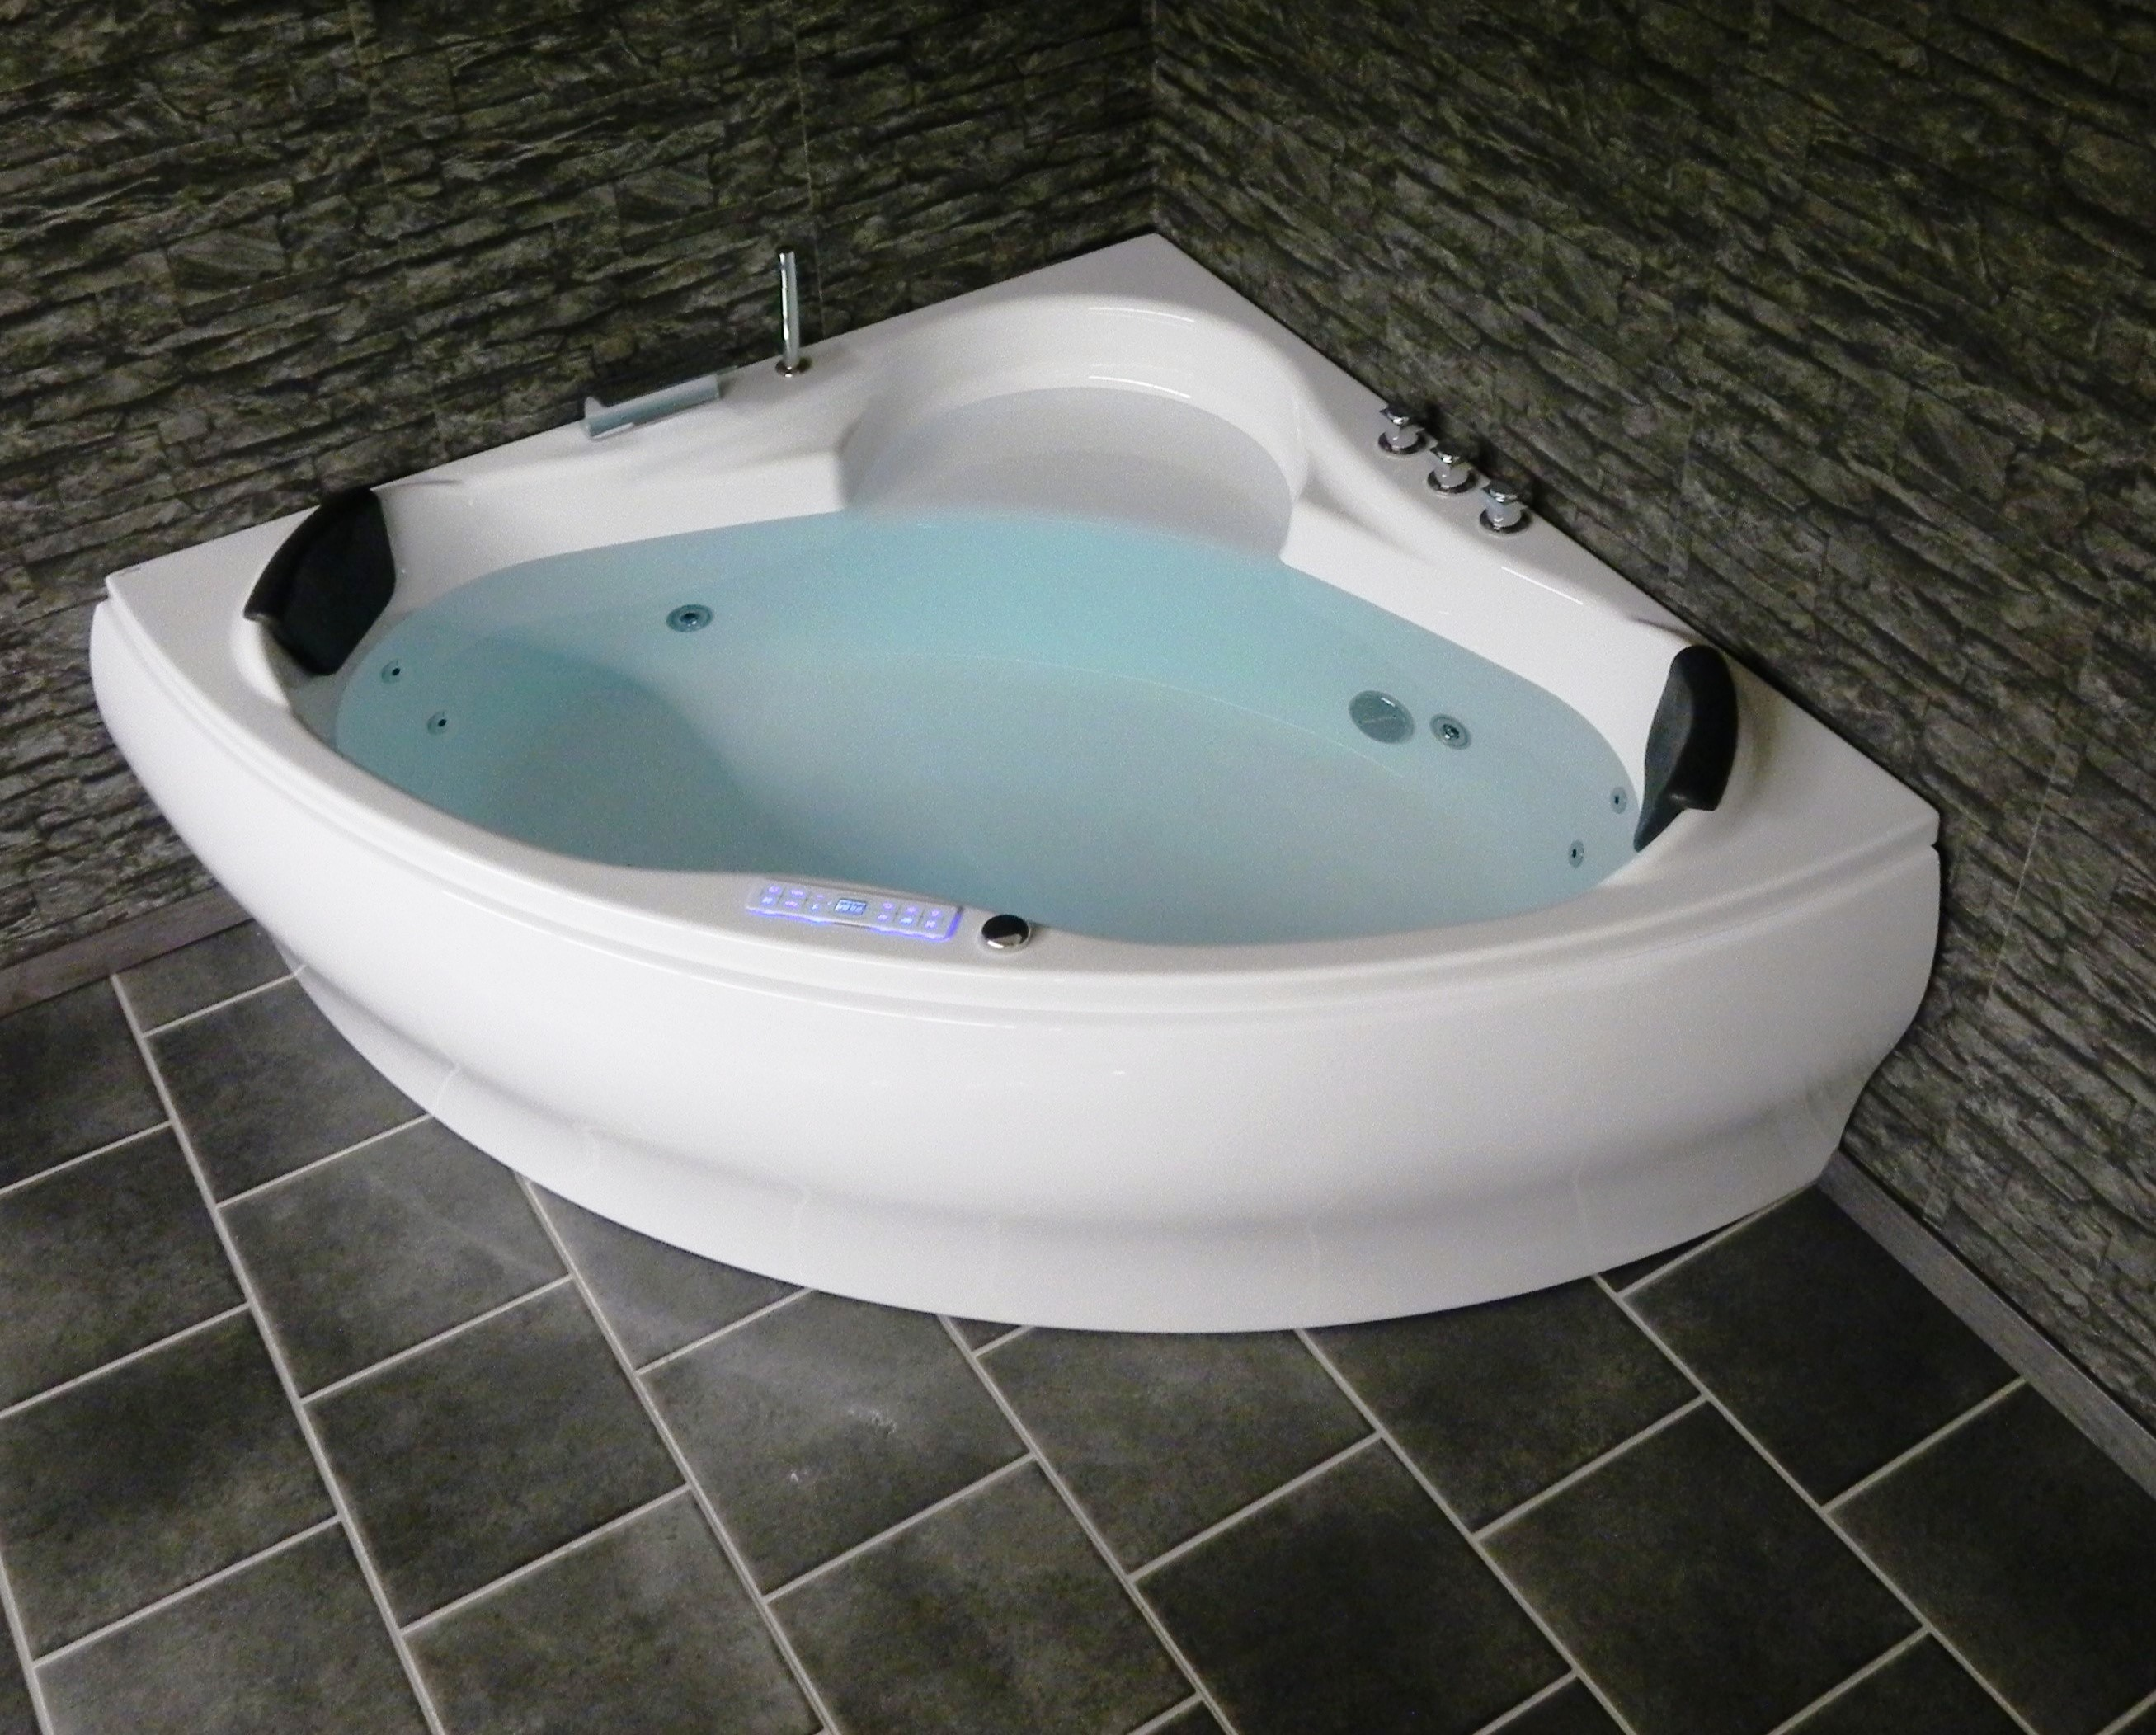 luna triangle whirlpool bathtub led jacuzzi spa 140 150 top offer. Black Bedroom Furniture Sets. Home Design Ideas